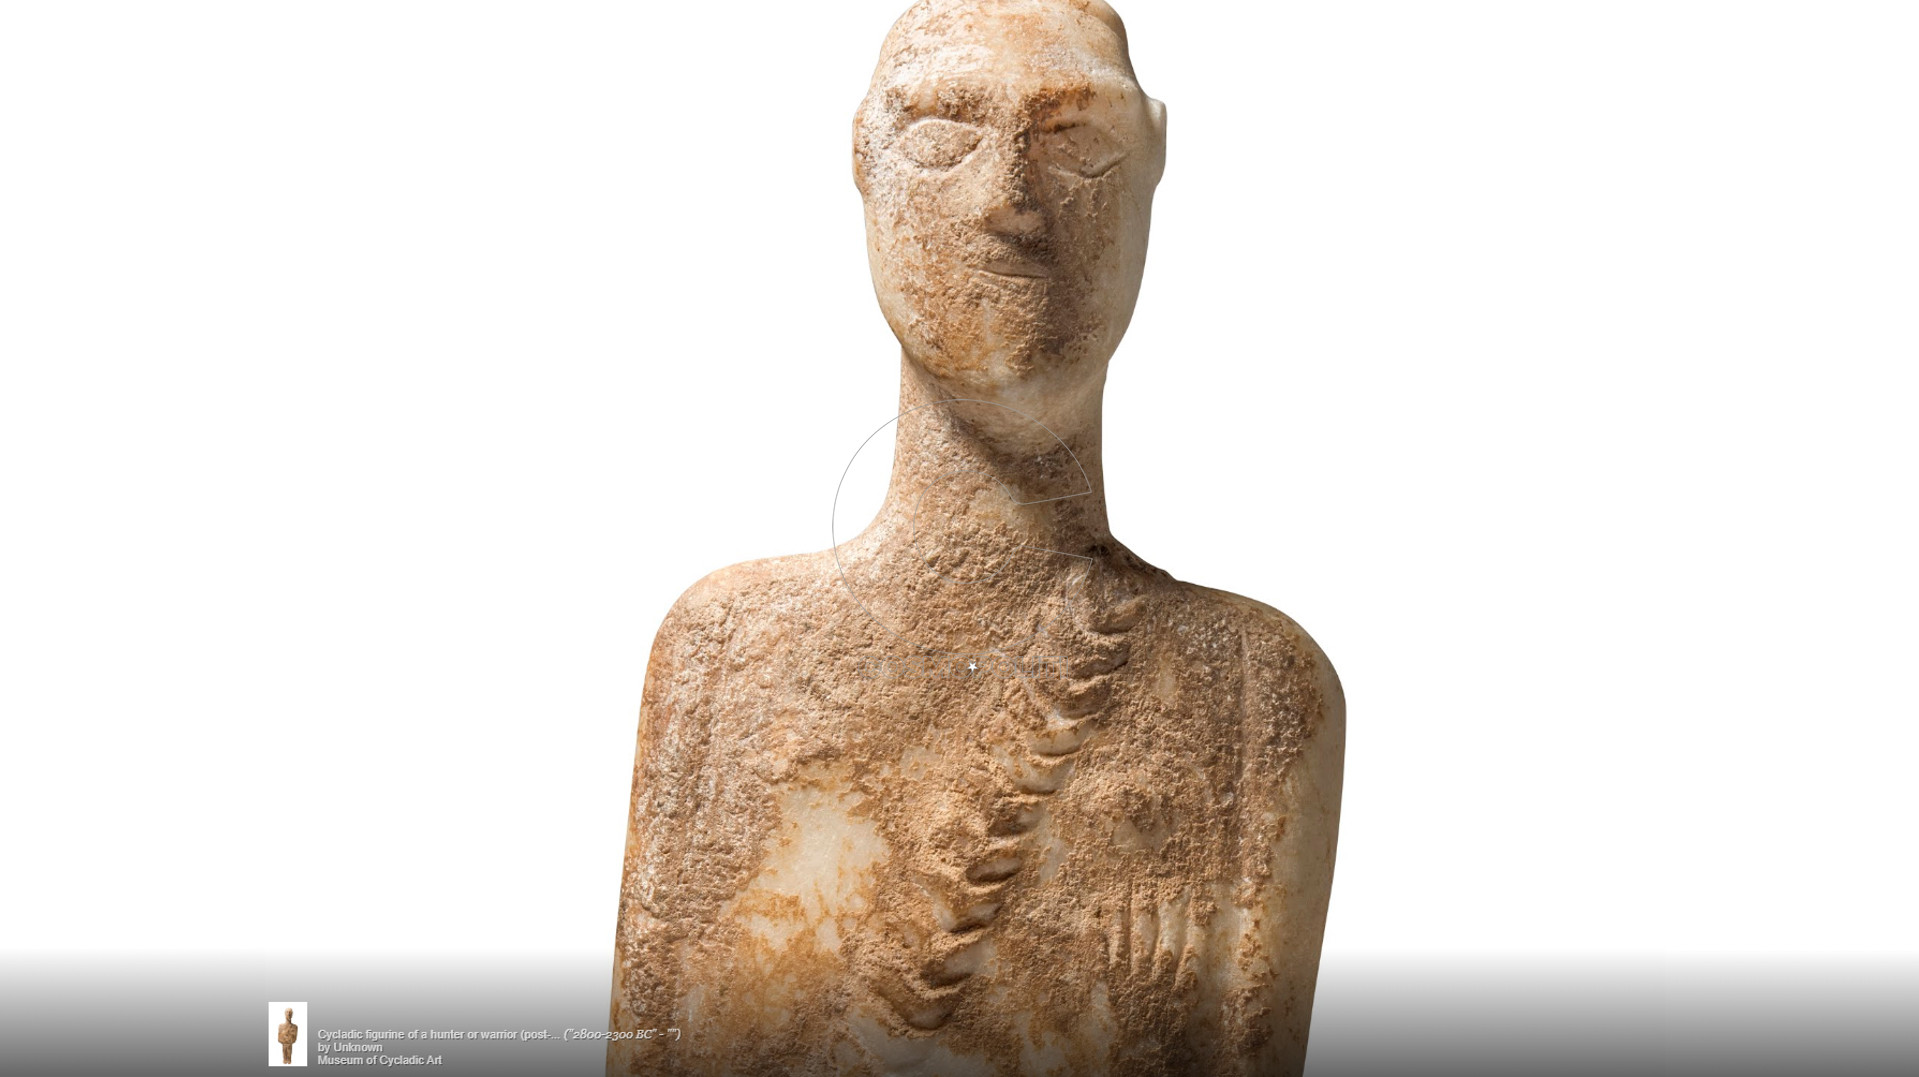 8. Google Art Project © Museum of Cycladic Art